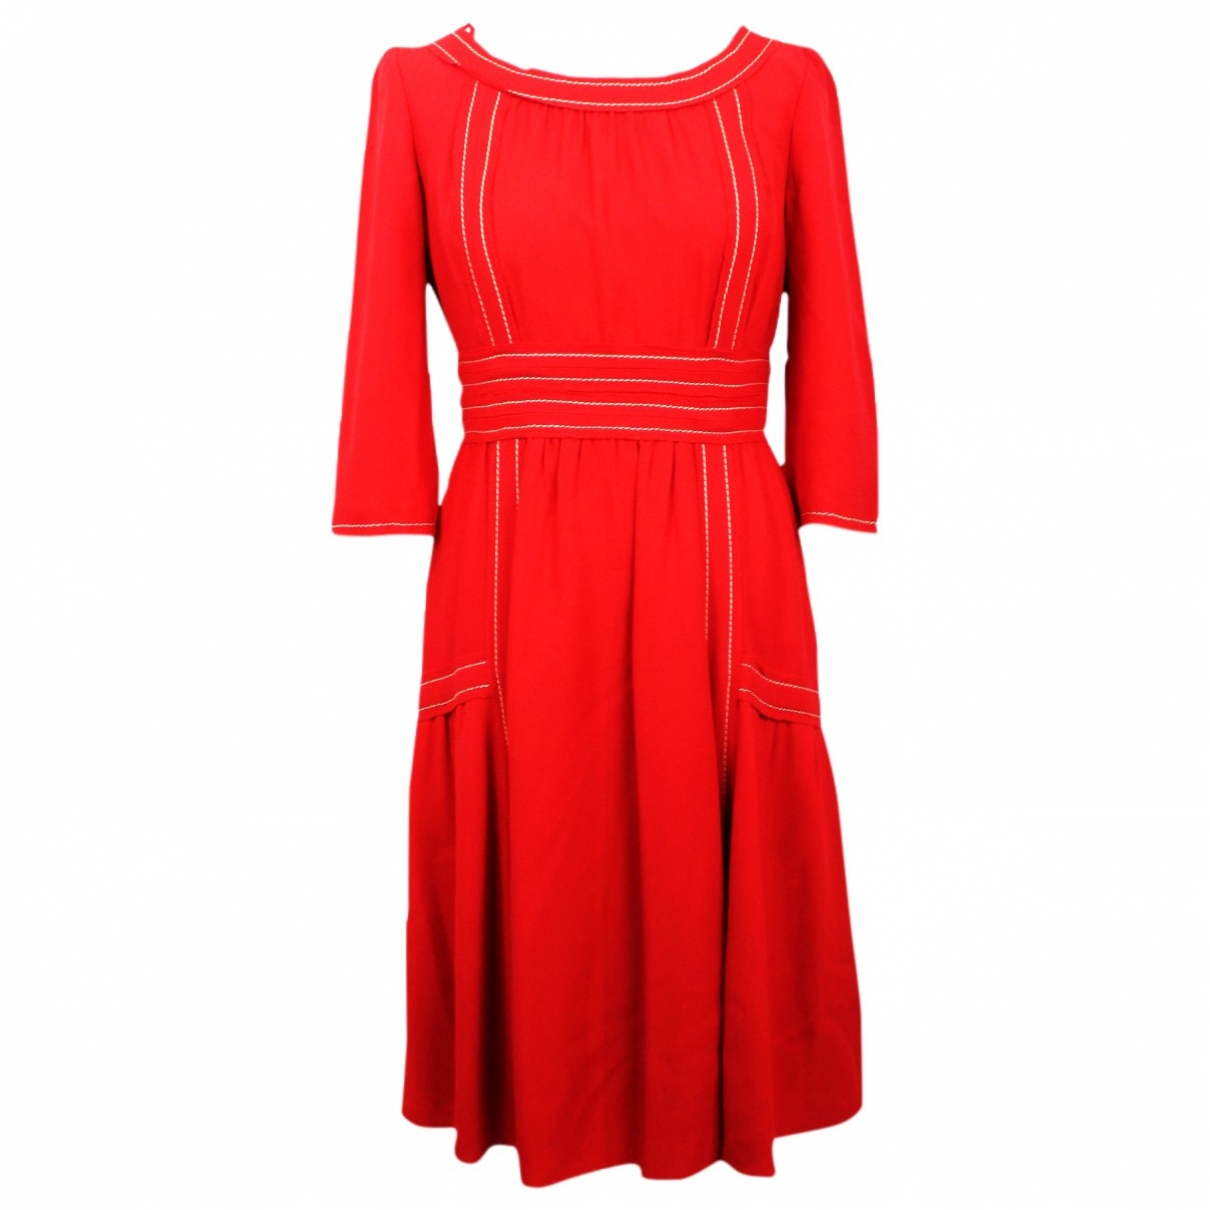 Prada \N Kleid in  Rot Synthetik